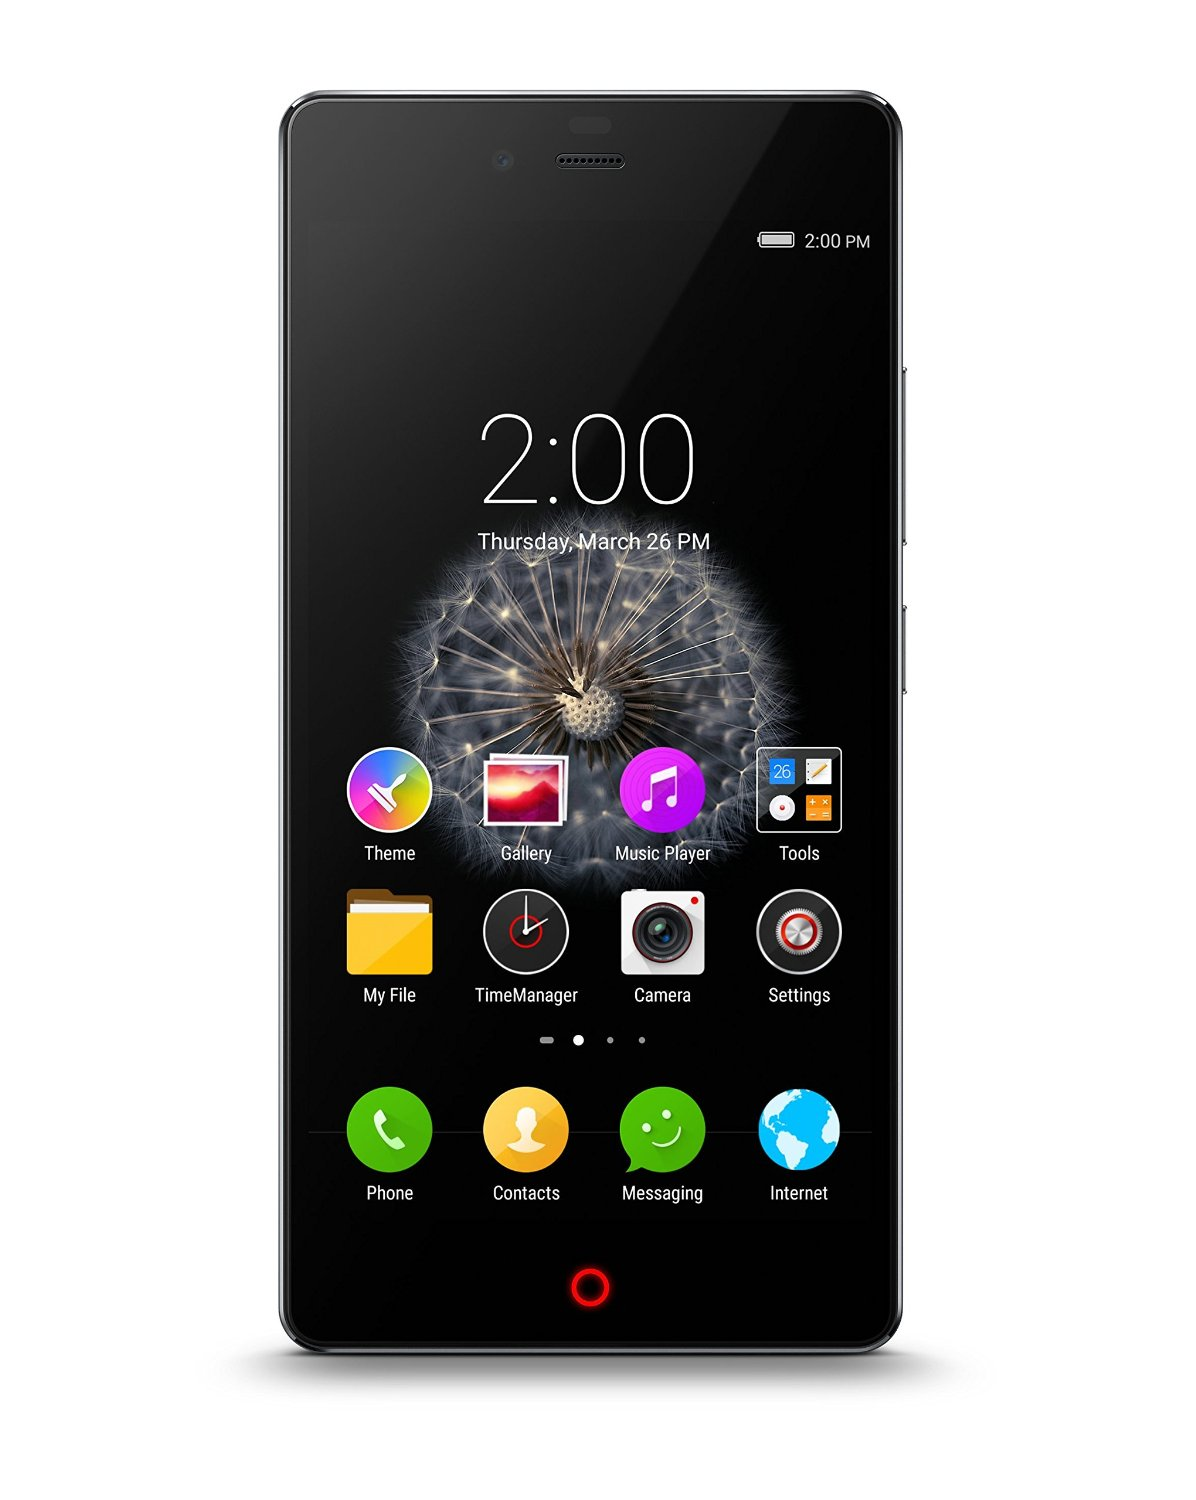 Buy ZTE Nubia Z9 Mini Black 16 GB (Unboxed) for ₹100 Only [Pricing Error] [OOS]